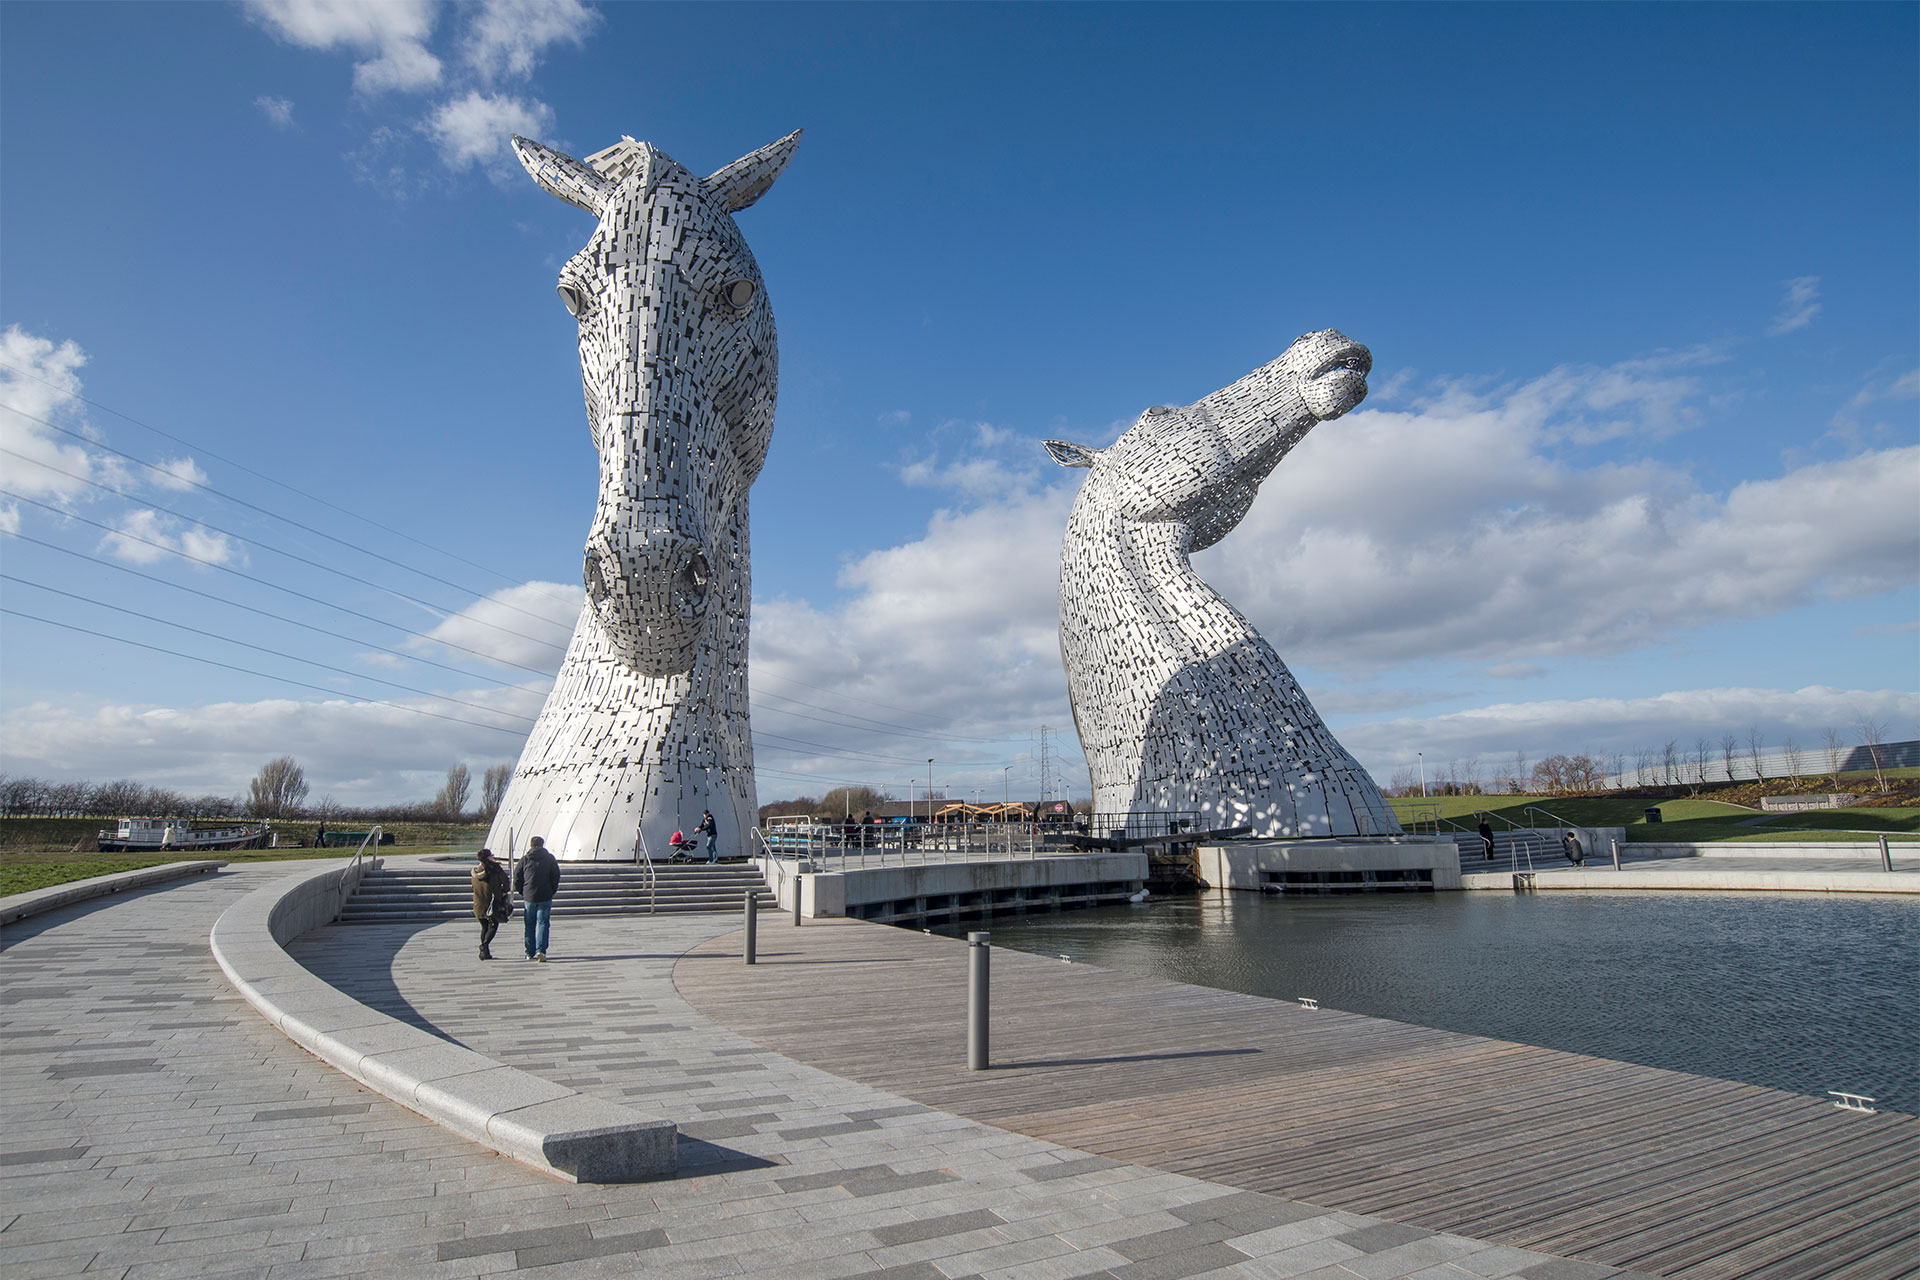 The Helix, Home of the Kelpies